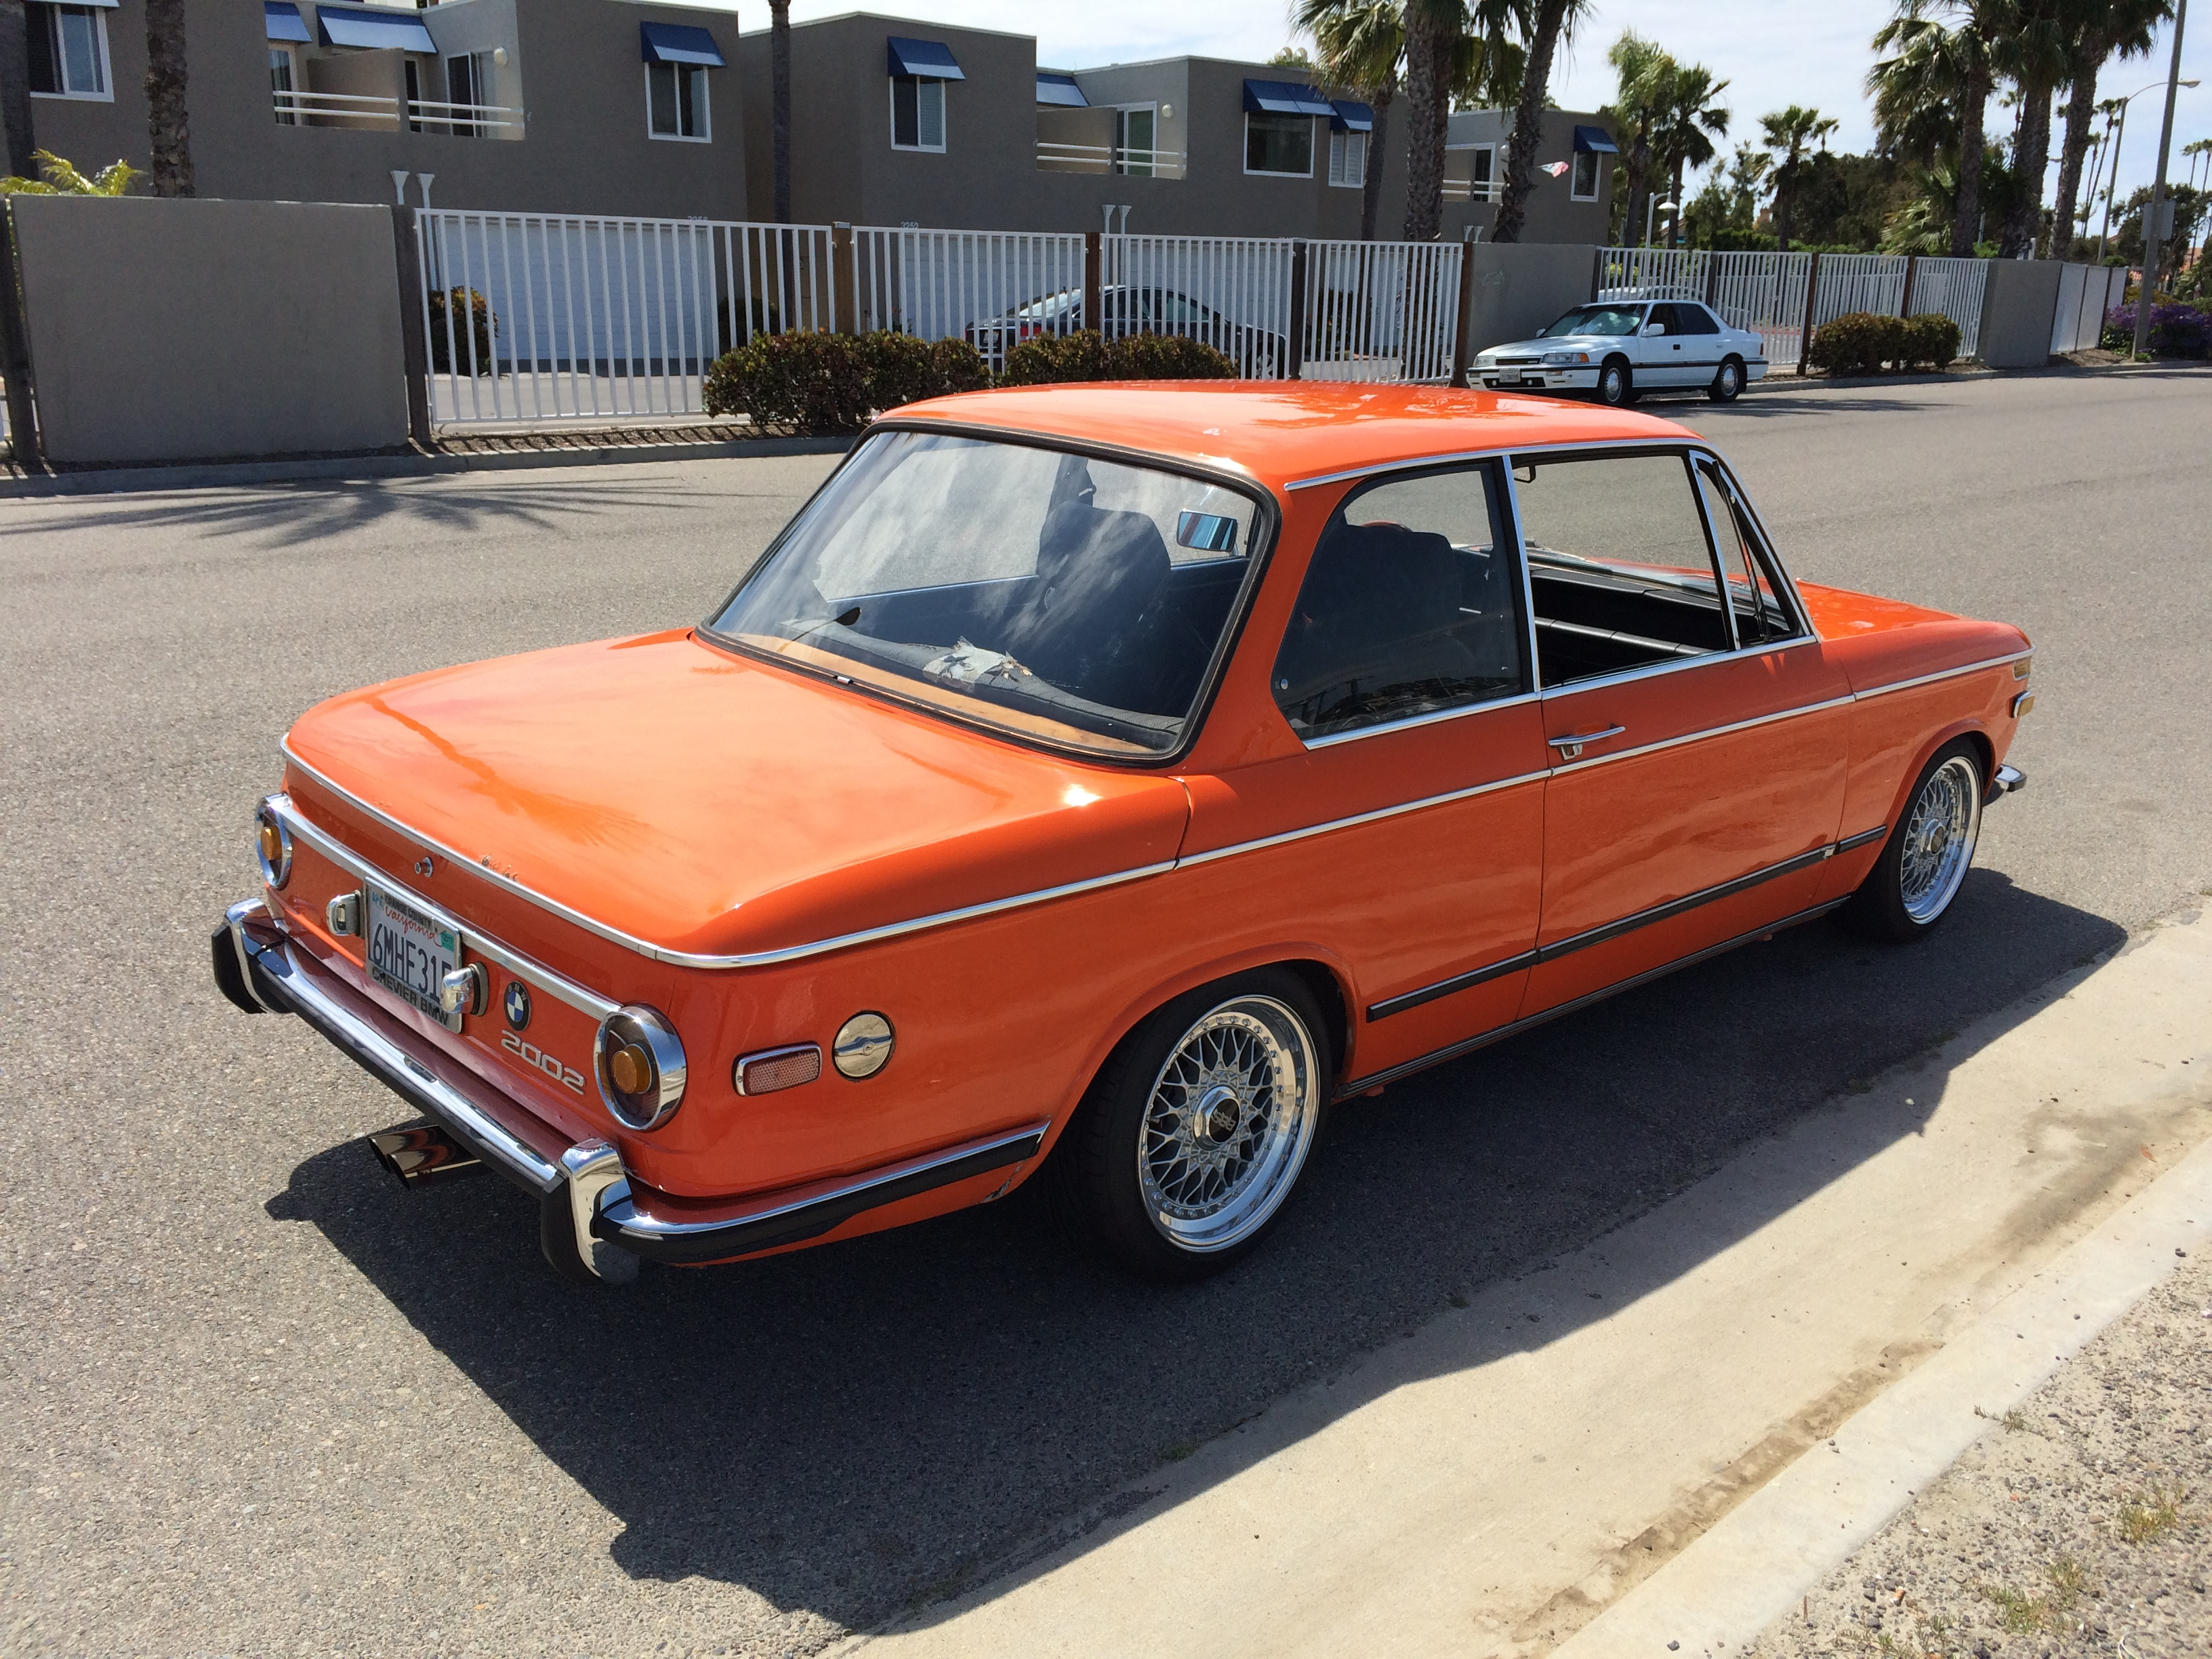 1972 Inka Orange Roundie Built M10 Side Drafts 5spd Bbs Rs 3 91 Lsd Bmw 2002 And Neue Klasse Cars For Sale Wanted Bmw 2002 Faq